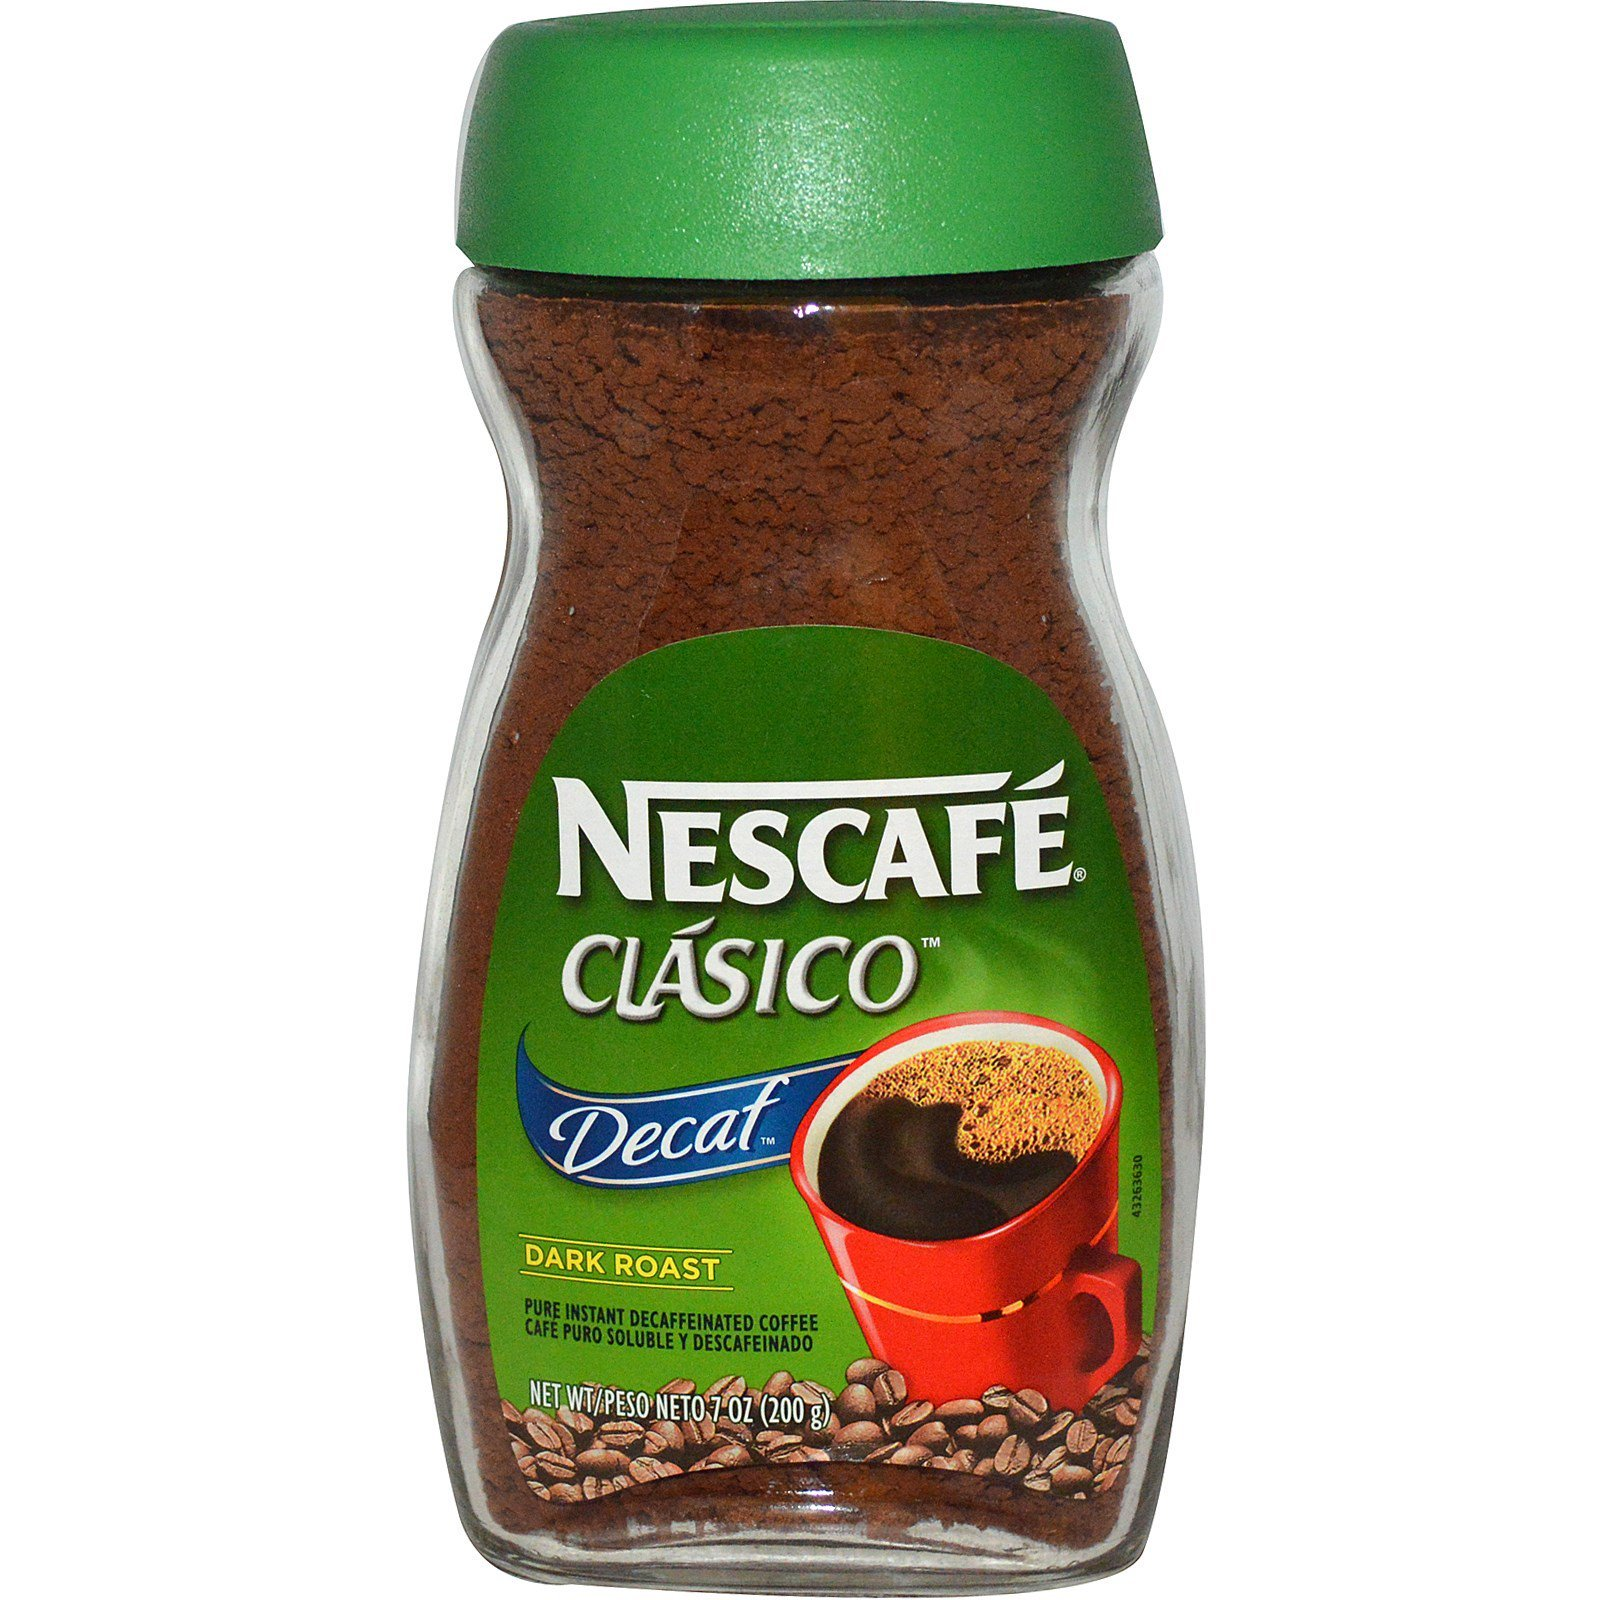 Nescafé Clasico Pure Instant Decaffeinated Coffee Decaf Dark Roast 7 Oz